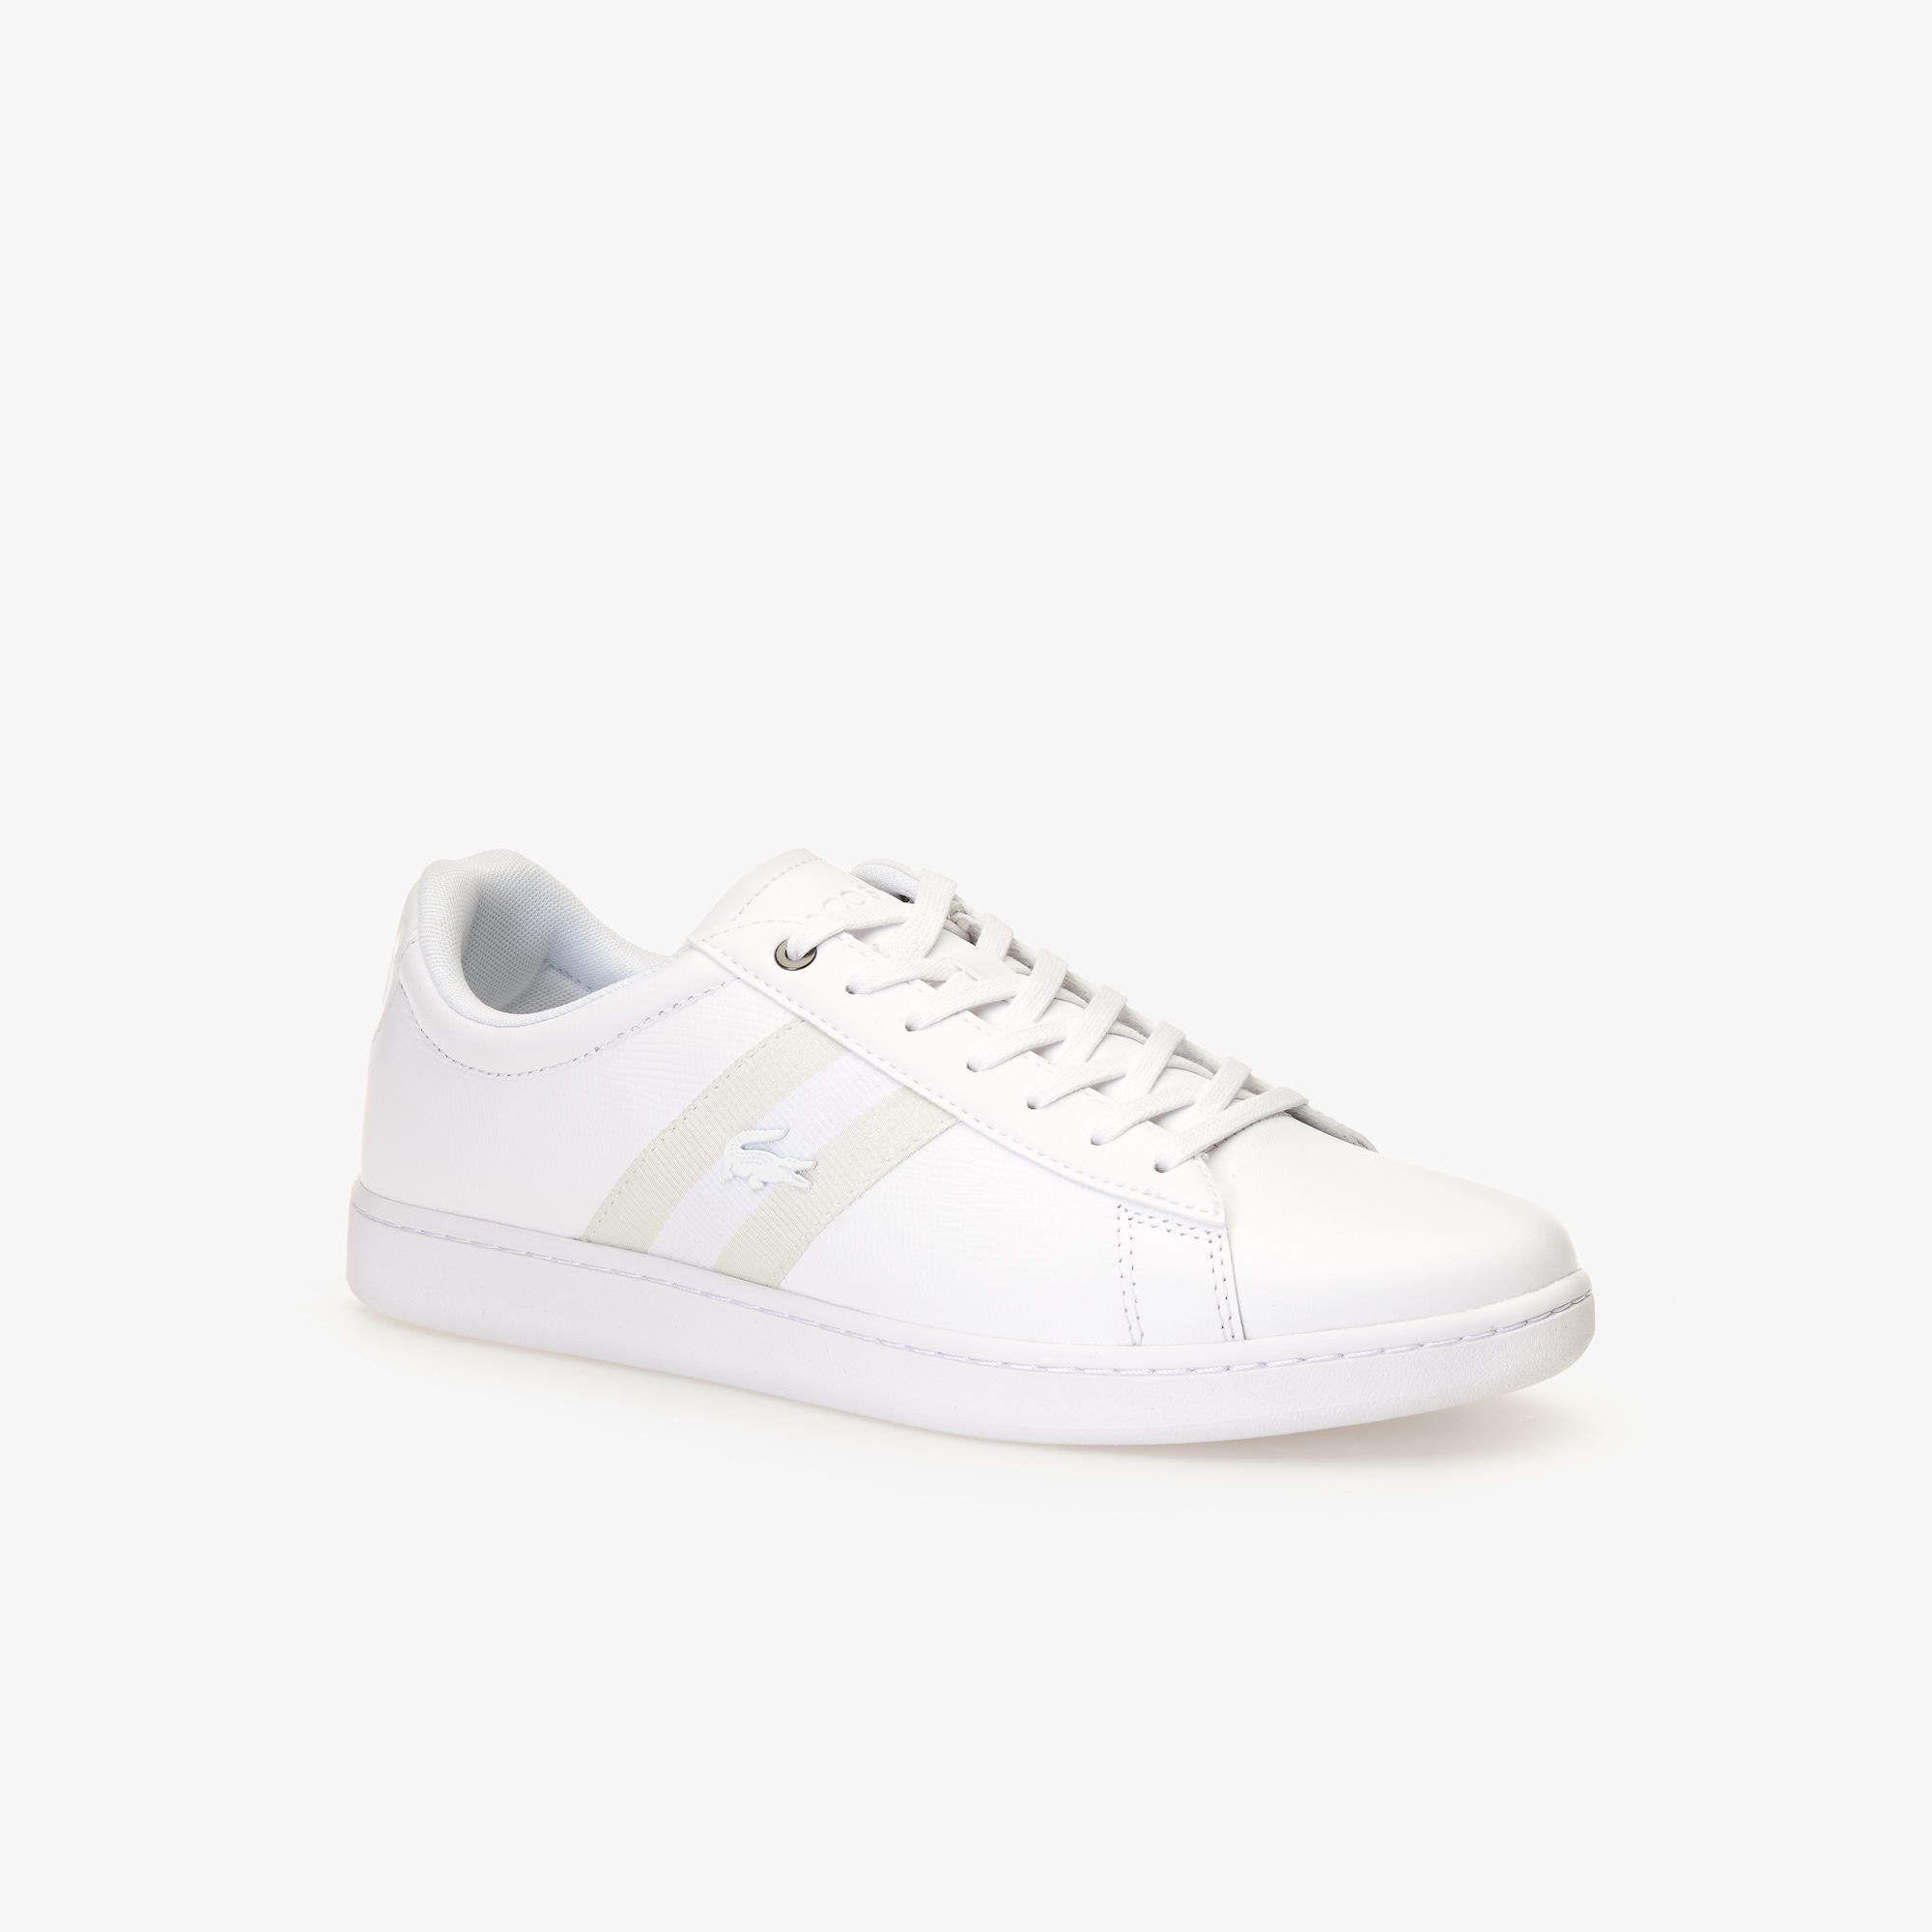 5d93b08d87658 Chaussures homme   Collection Homme   LACOSTE